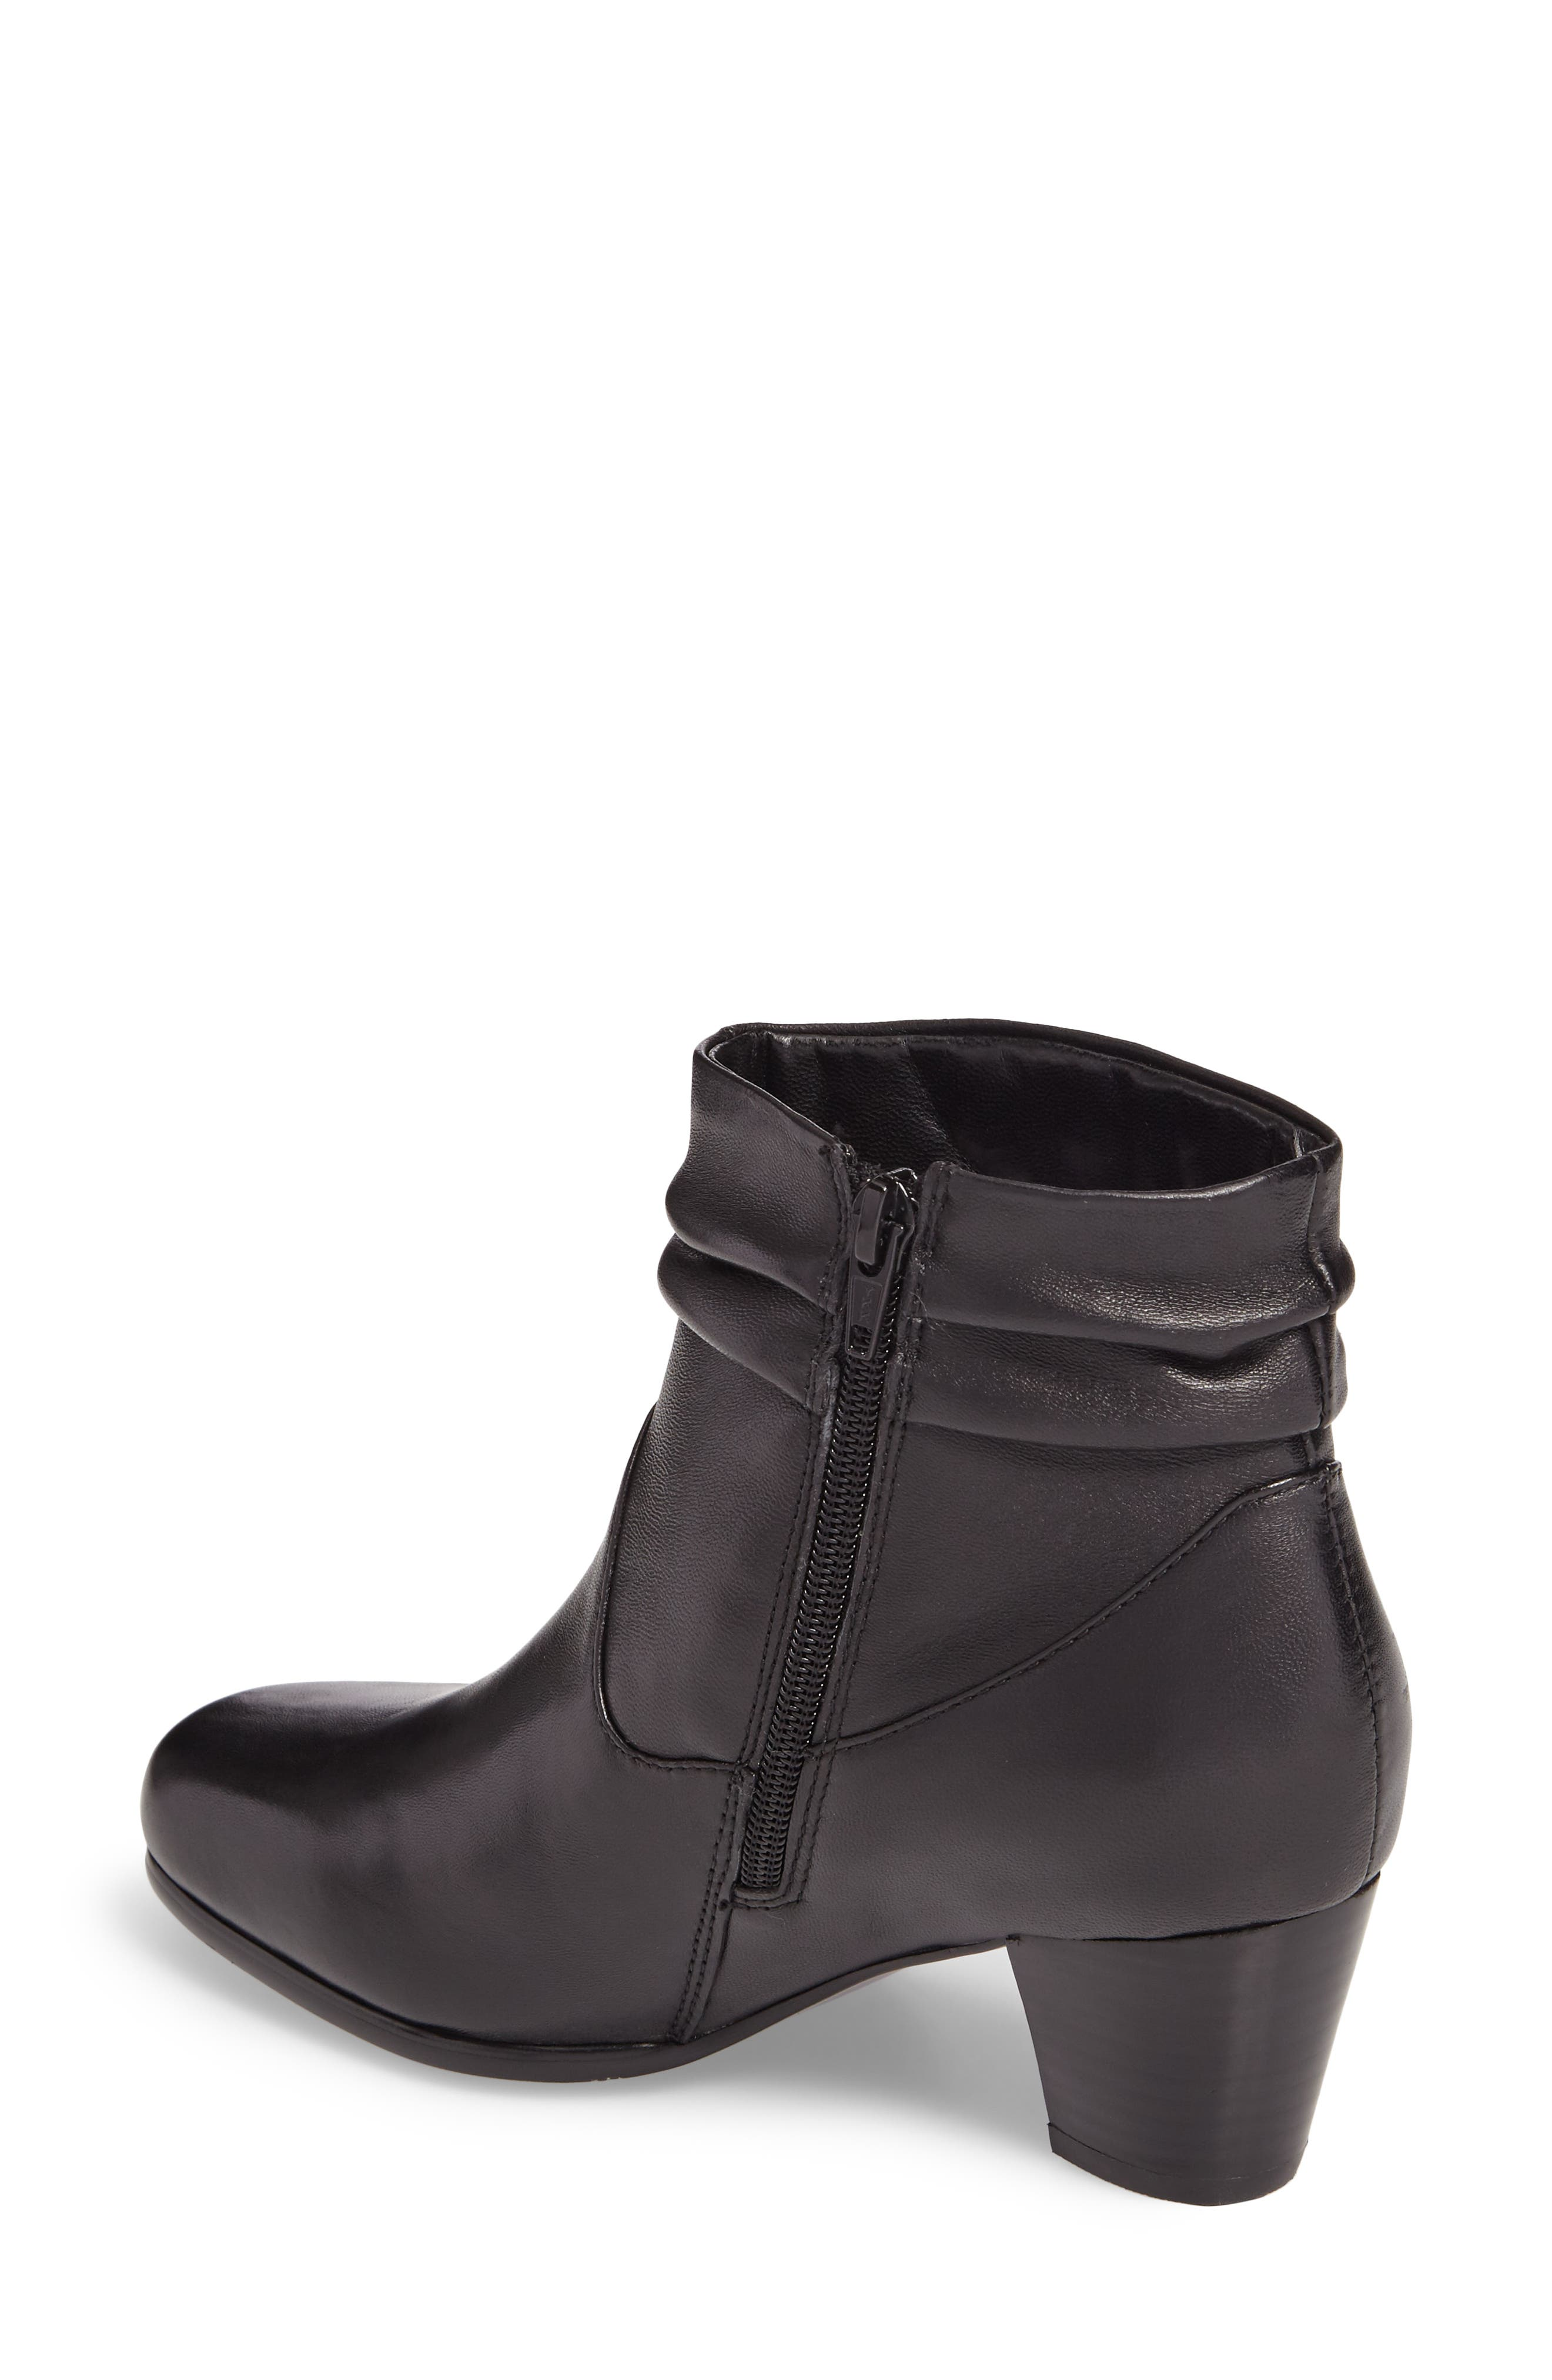 Shadown Bootie,                             Alternate thumbnail 2, color,                             BLACK LEATHER